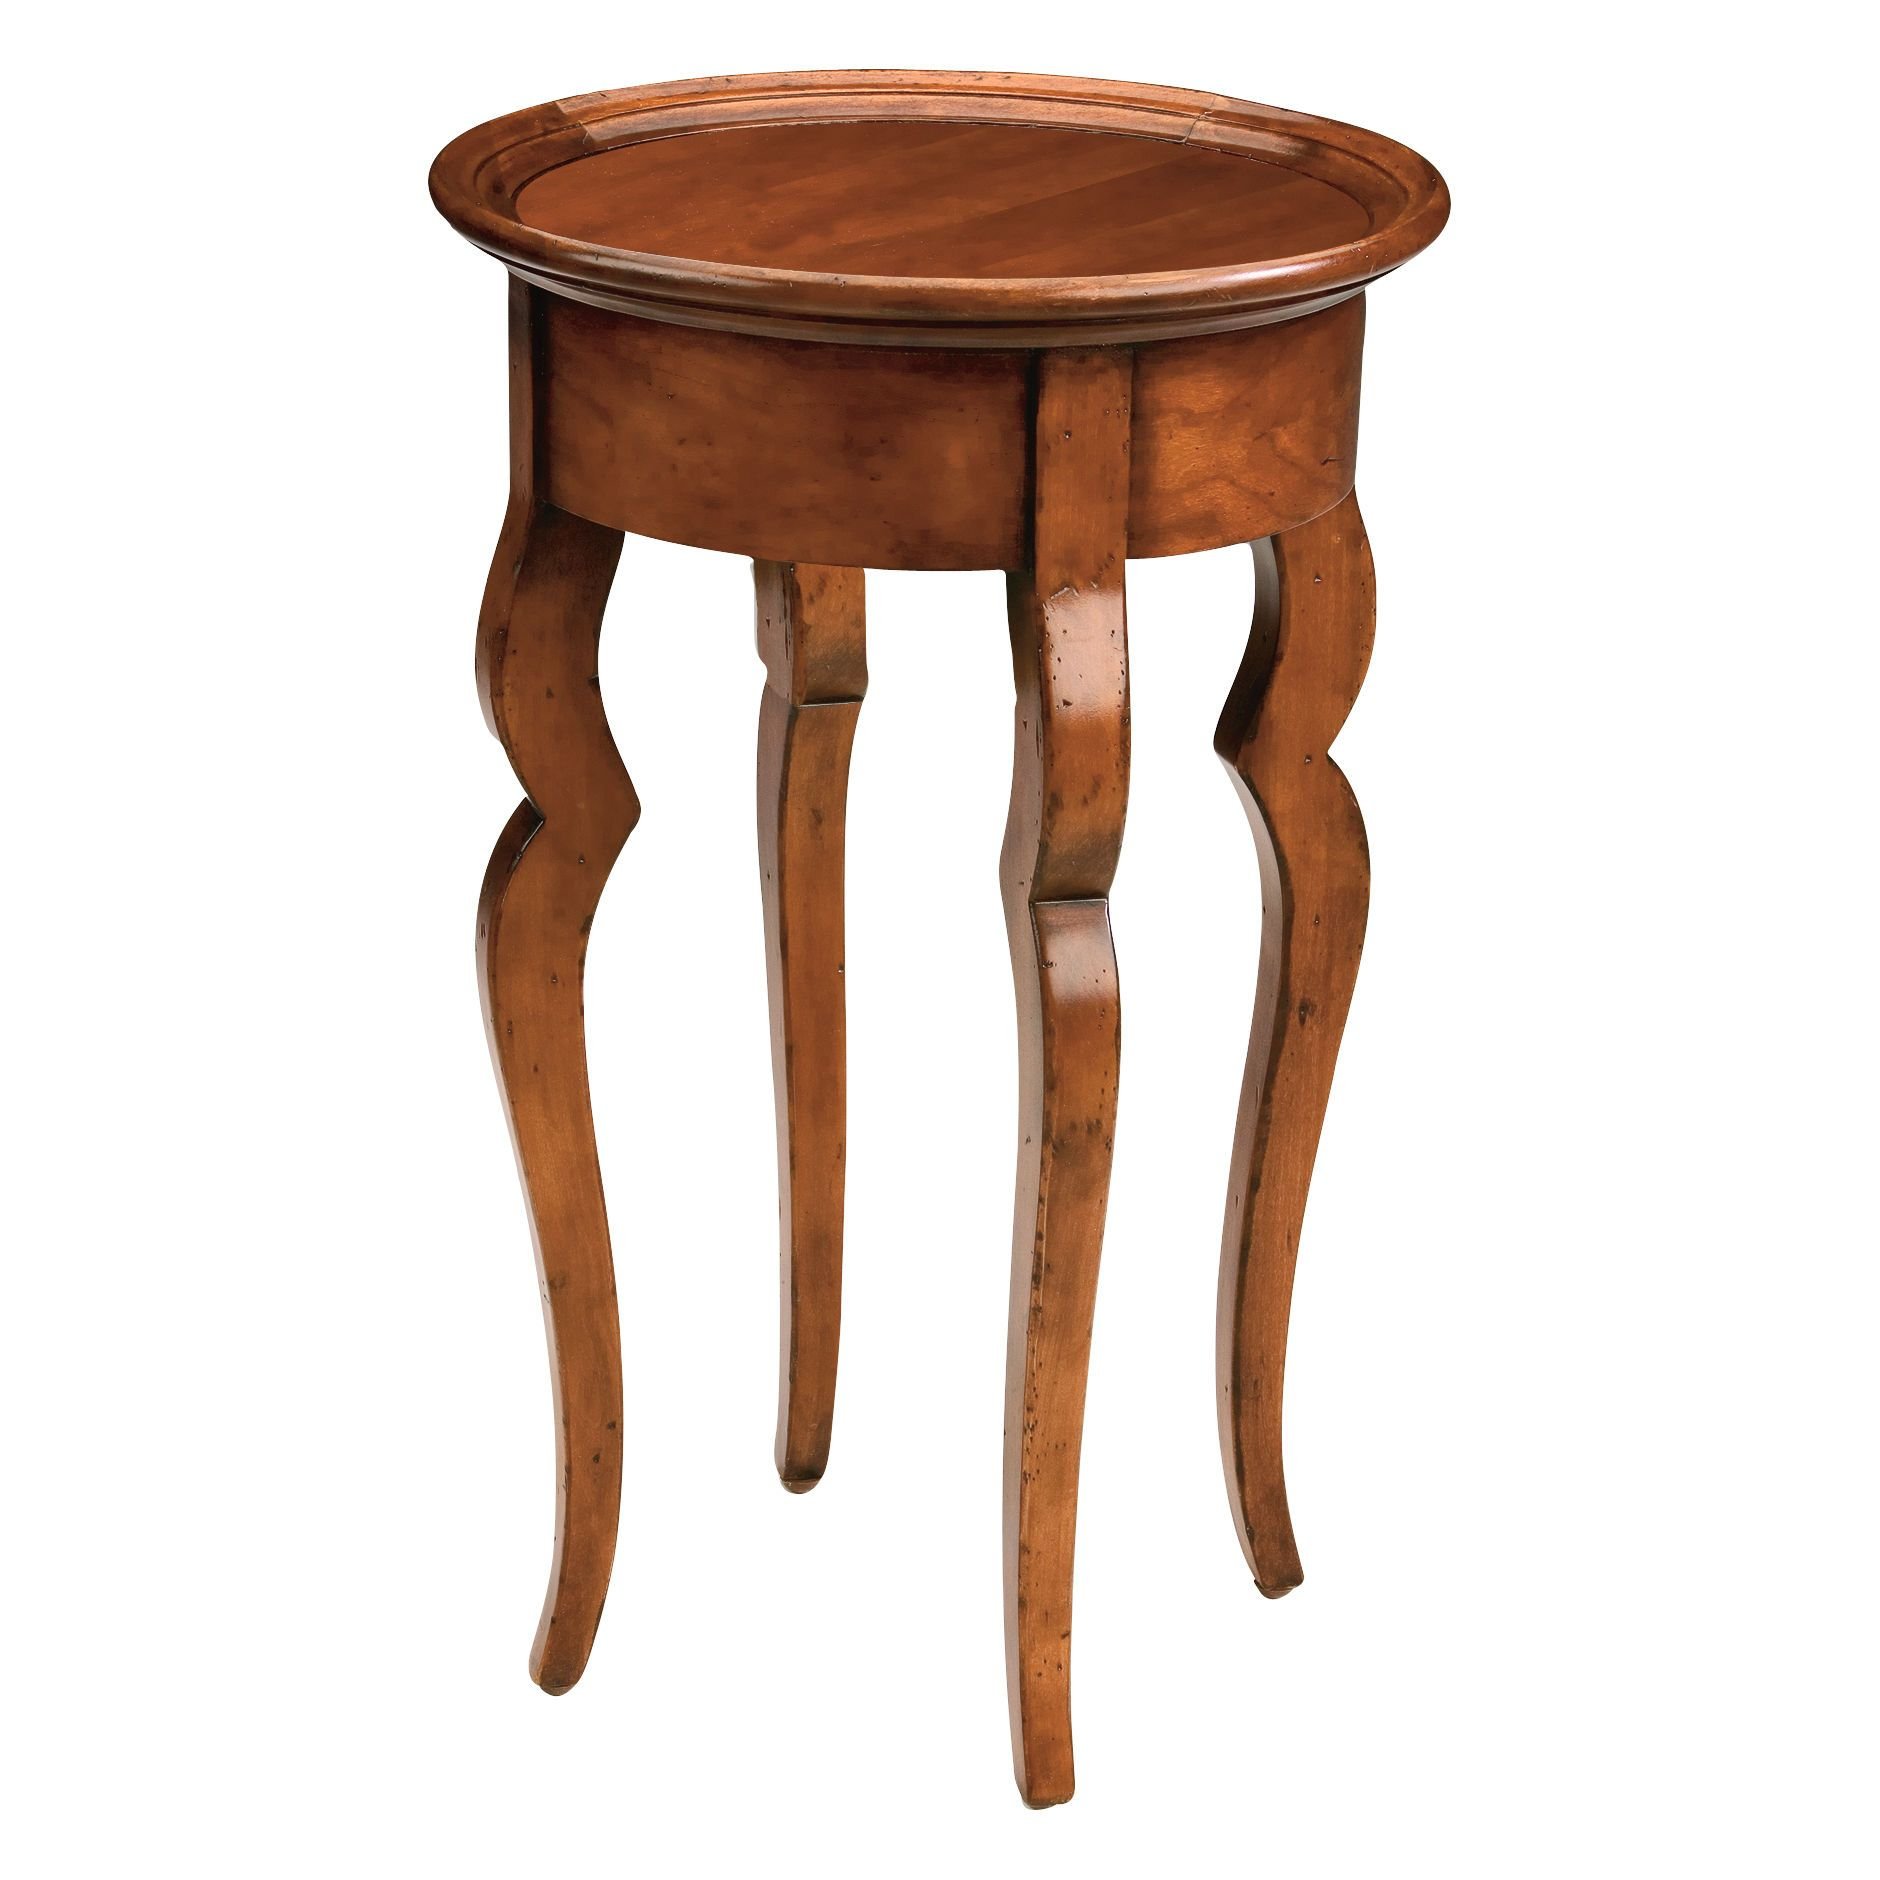 ethan allen pedestal end table tops ballan accent elisha round option for chair window oak flannel backed vinyl tablecloth inch tall thin side entryway dresser blue oriental lamps